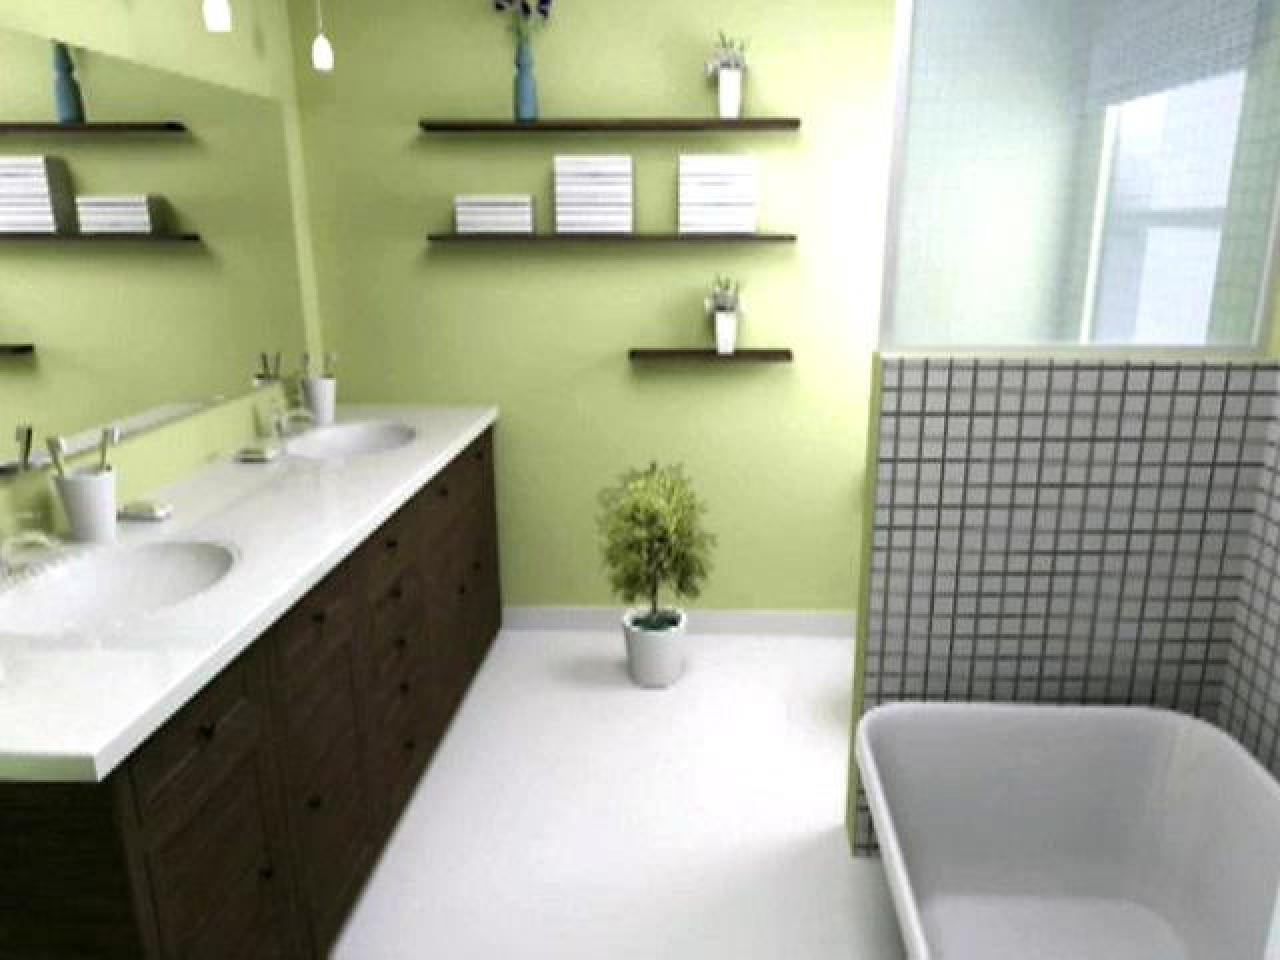 Bathroom Design Easy To Clean quick tips for organizing bathrooms | hgtv